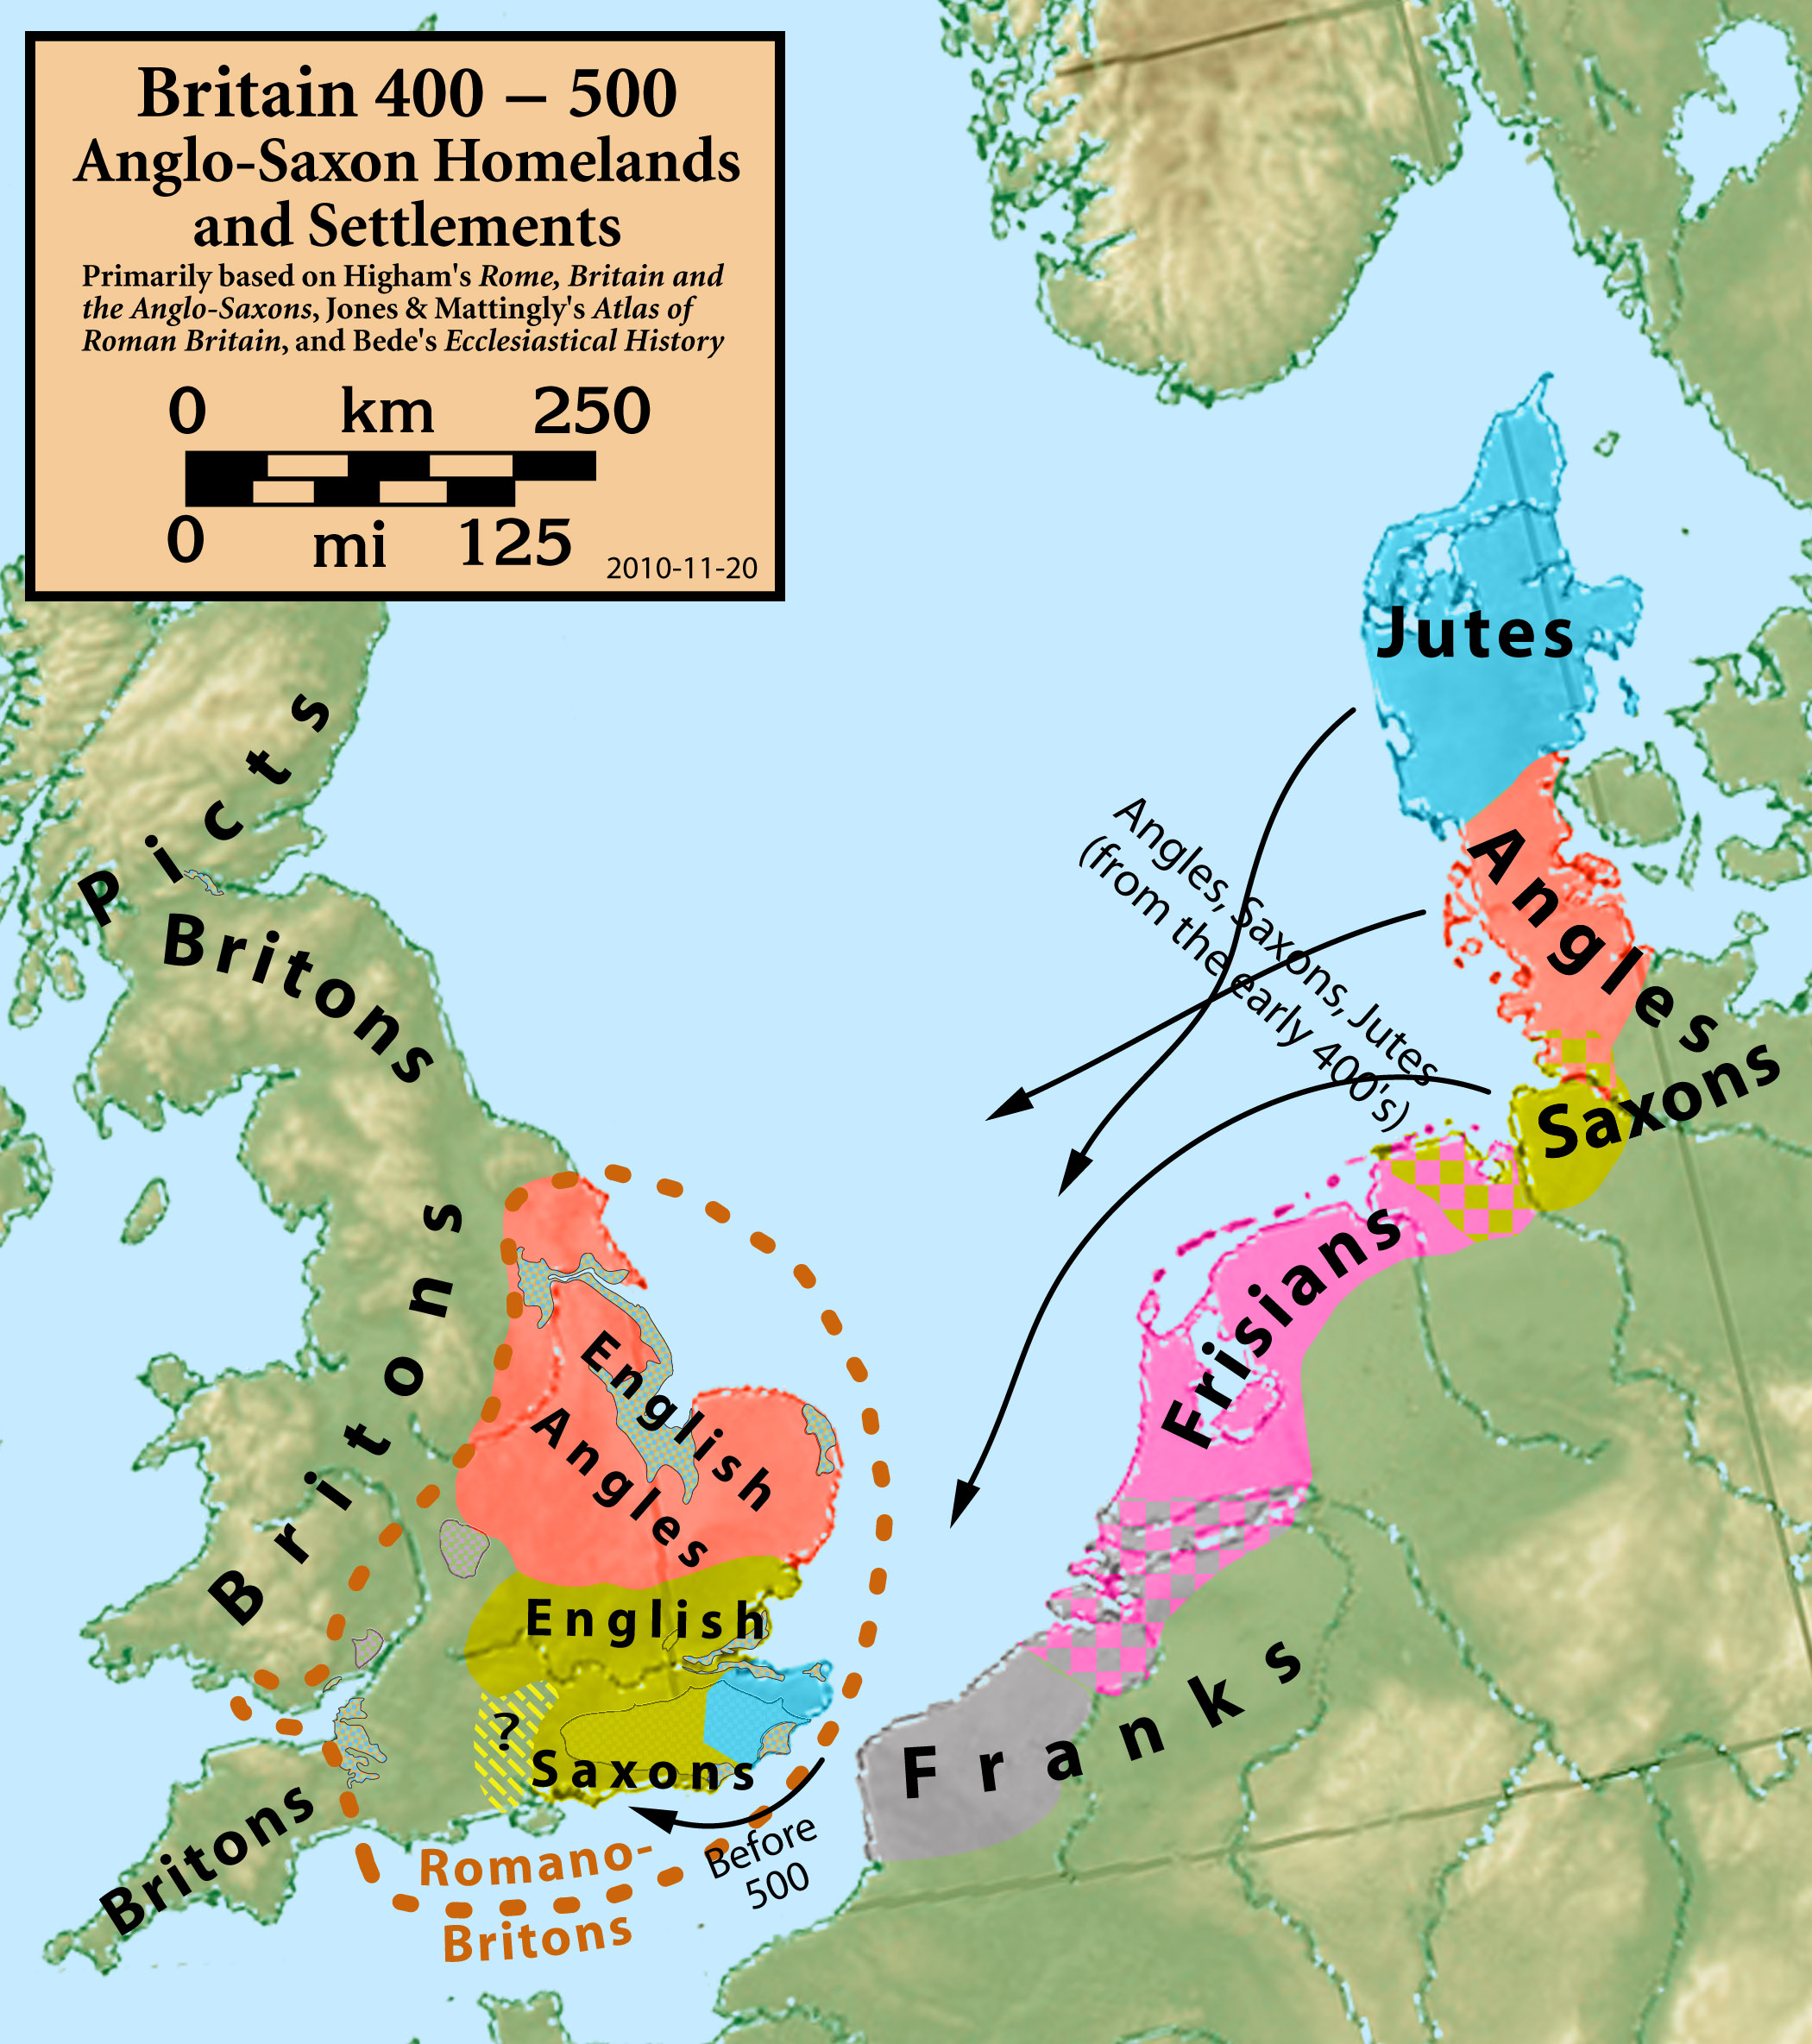 Map Of England 2100.File Britain Anglo Saxon Homelands Settlements 400 500 Jpg